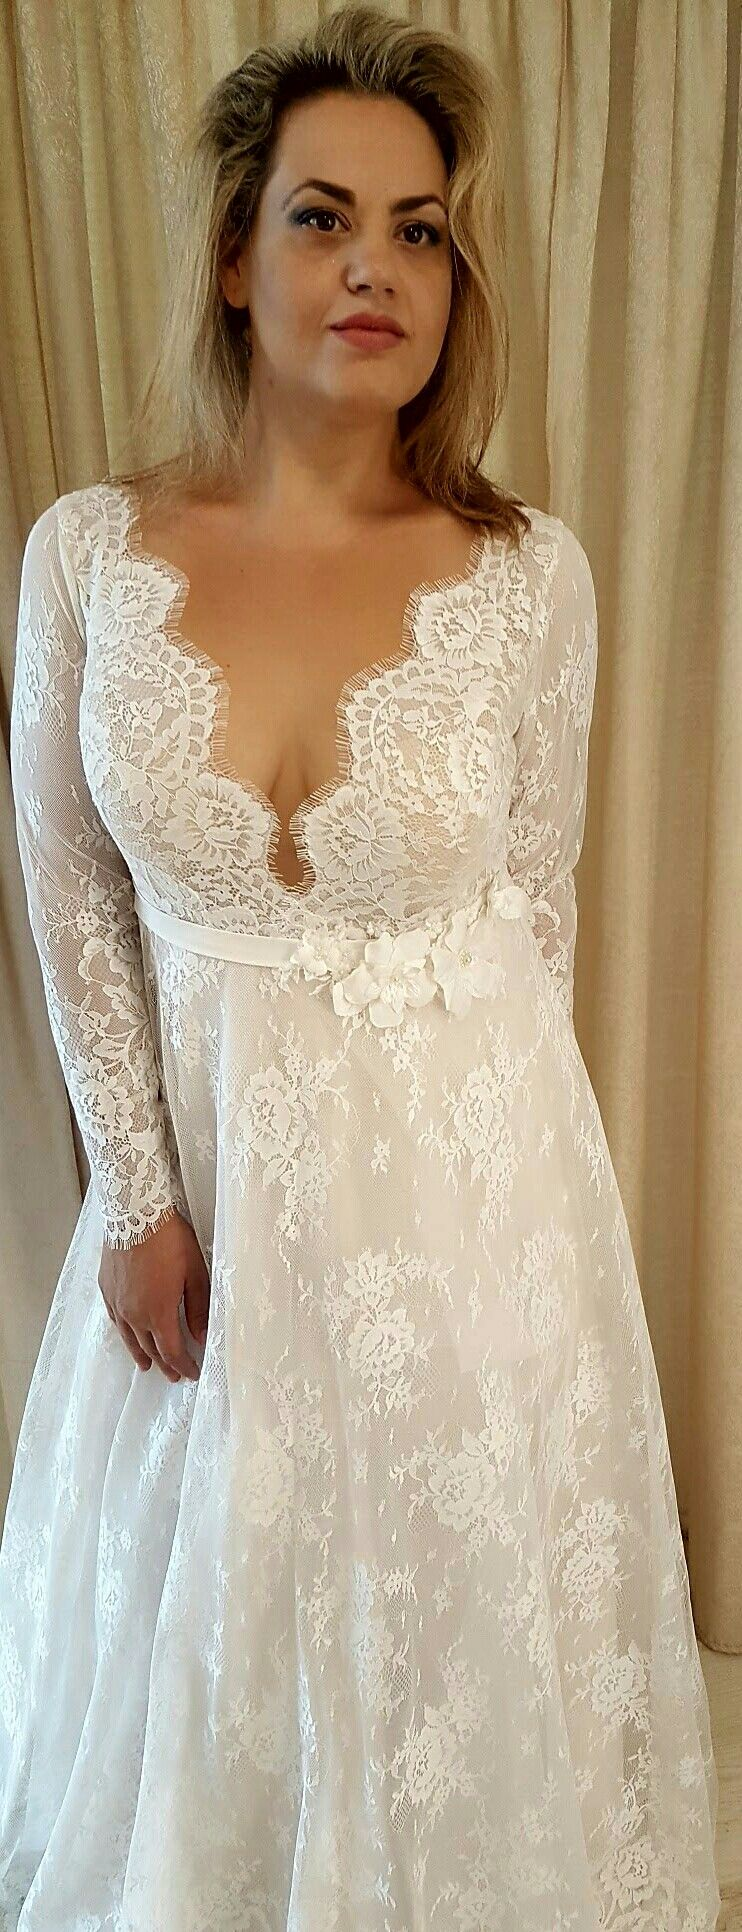 Plus size romantic french lace wedding gown with a deep vneck and